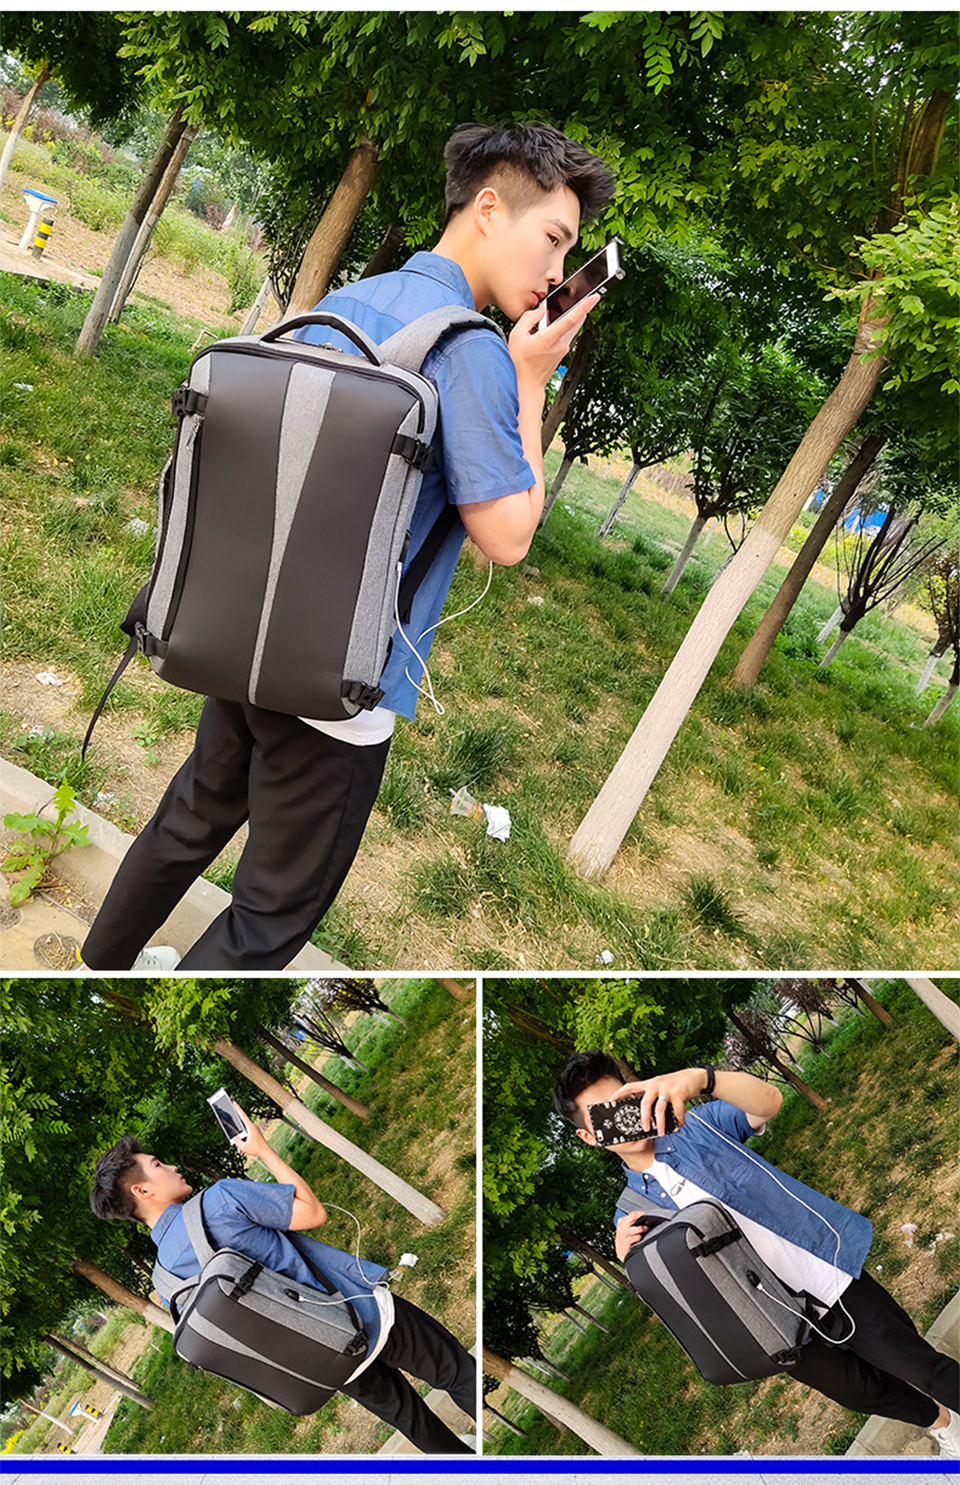 Men Backpack Anti Theft Travel Bagpack Laptop 15.6 Inch Notebook Waterproof Bags USB Charging Male Business Fashion Unisex Bag (11)